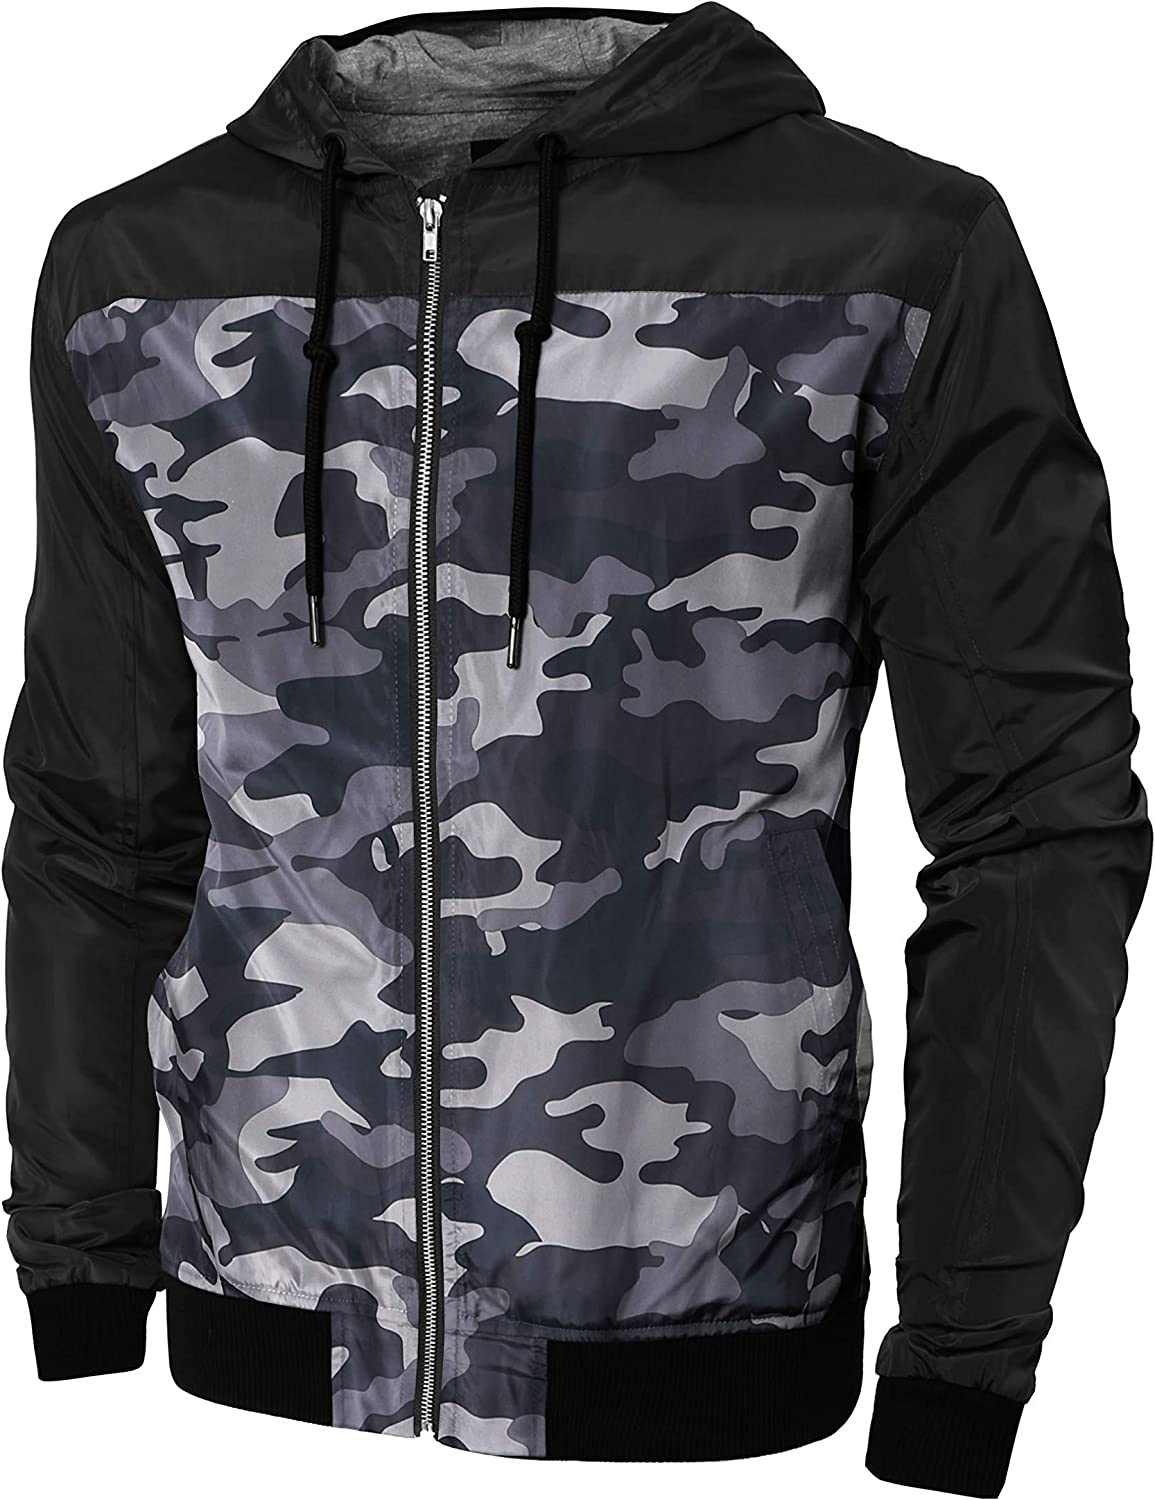 Hat and shop Beyond Mens Windbreaker Max 42% OFF Hooded Lightweight Two Tone Slim